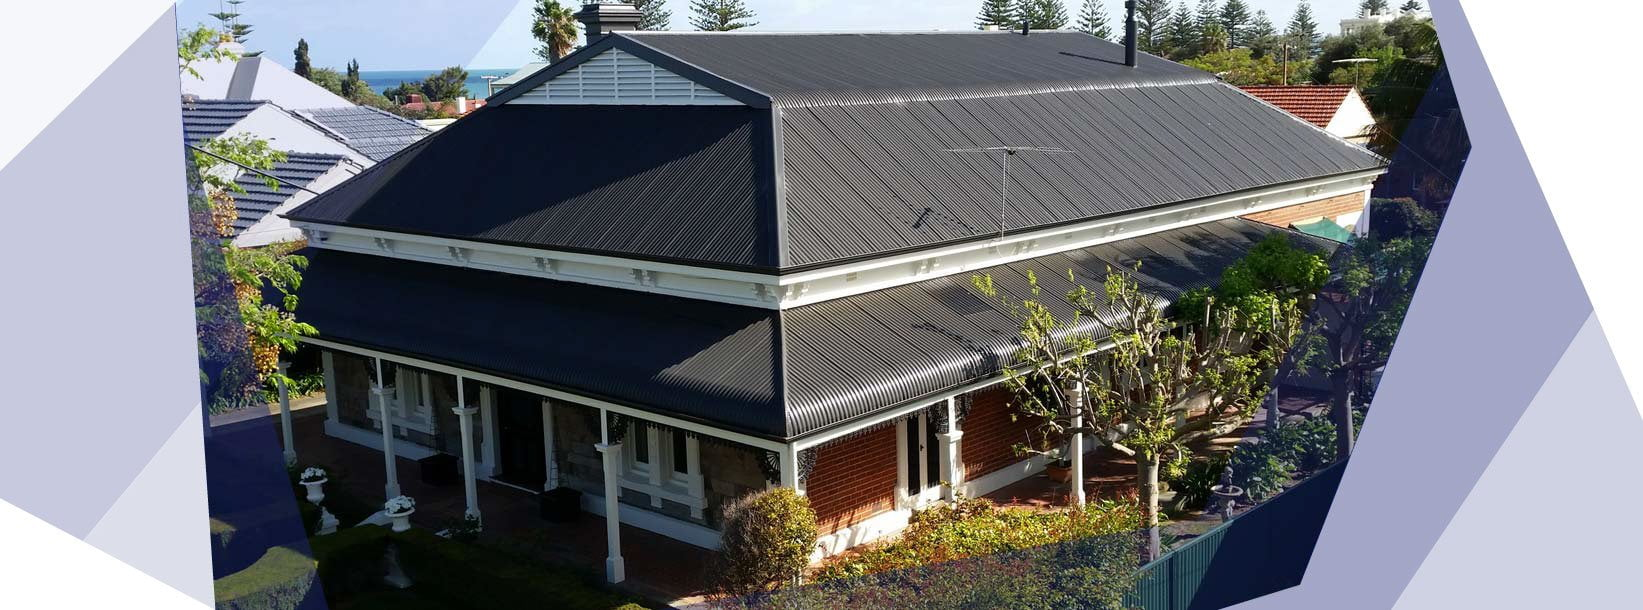 Home Slider Largs Bay Aerial View Ultimate Roofing